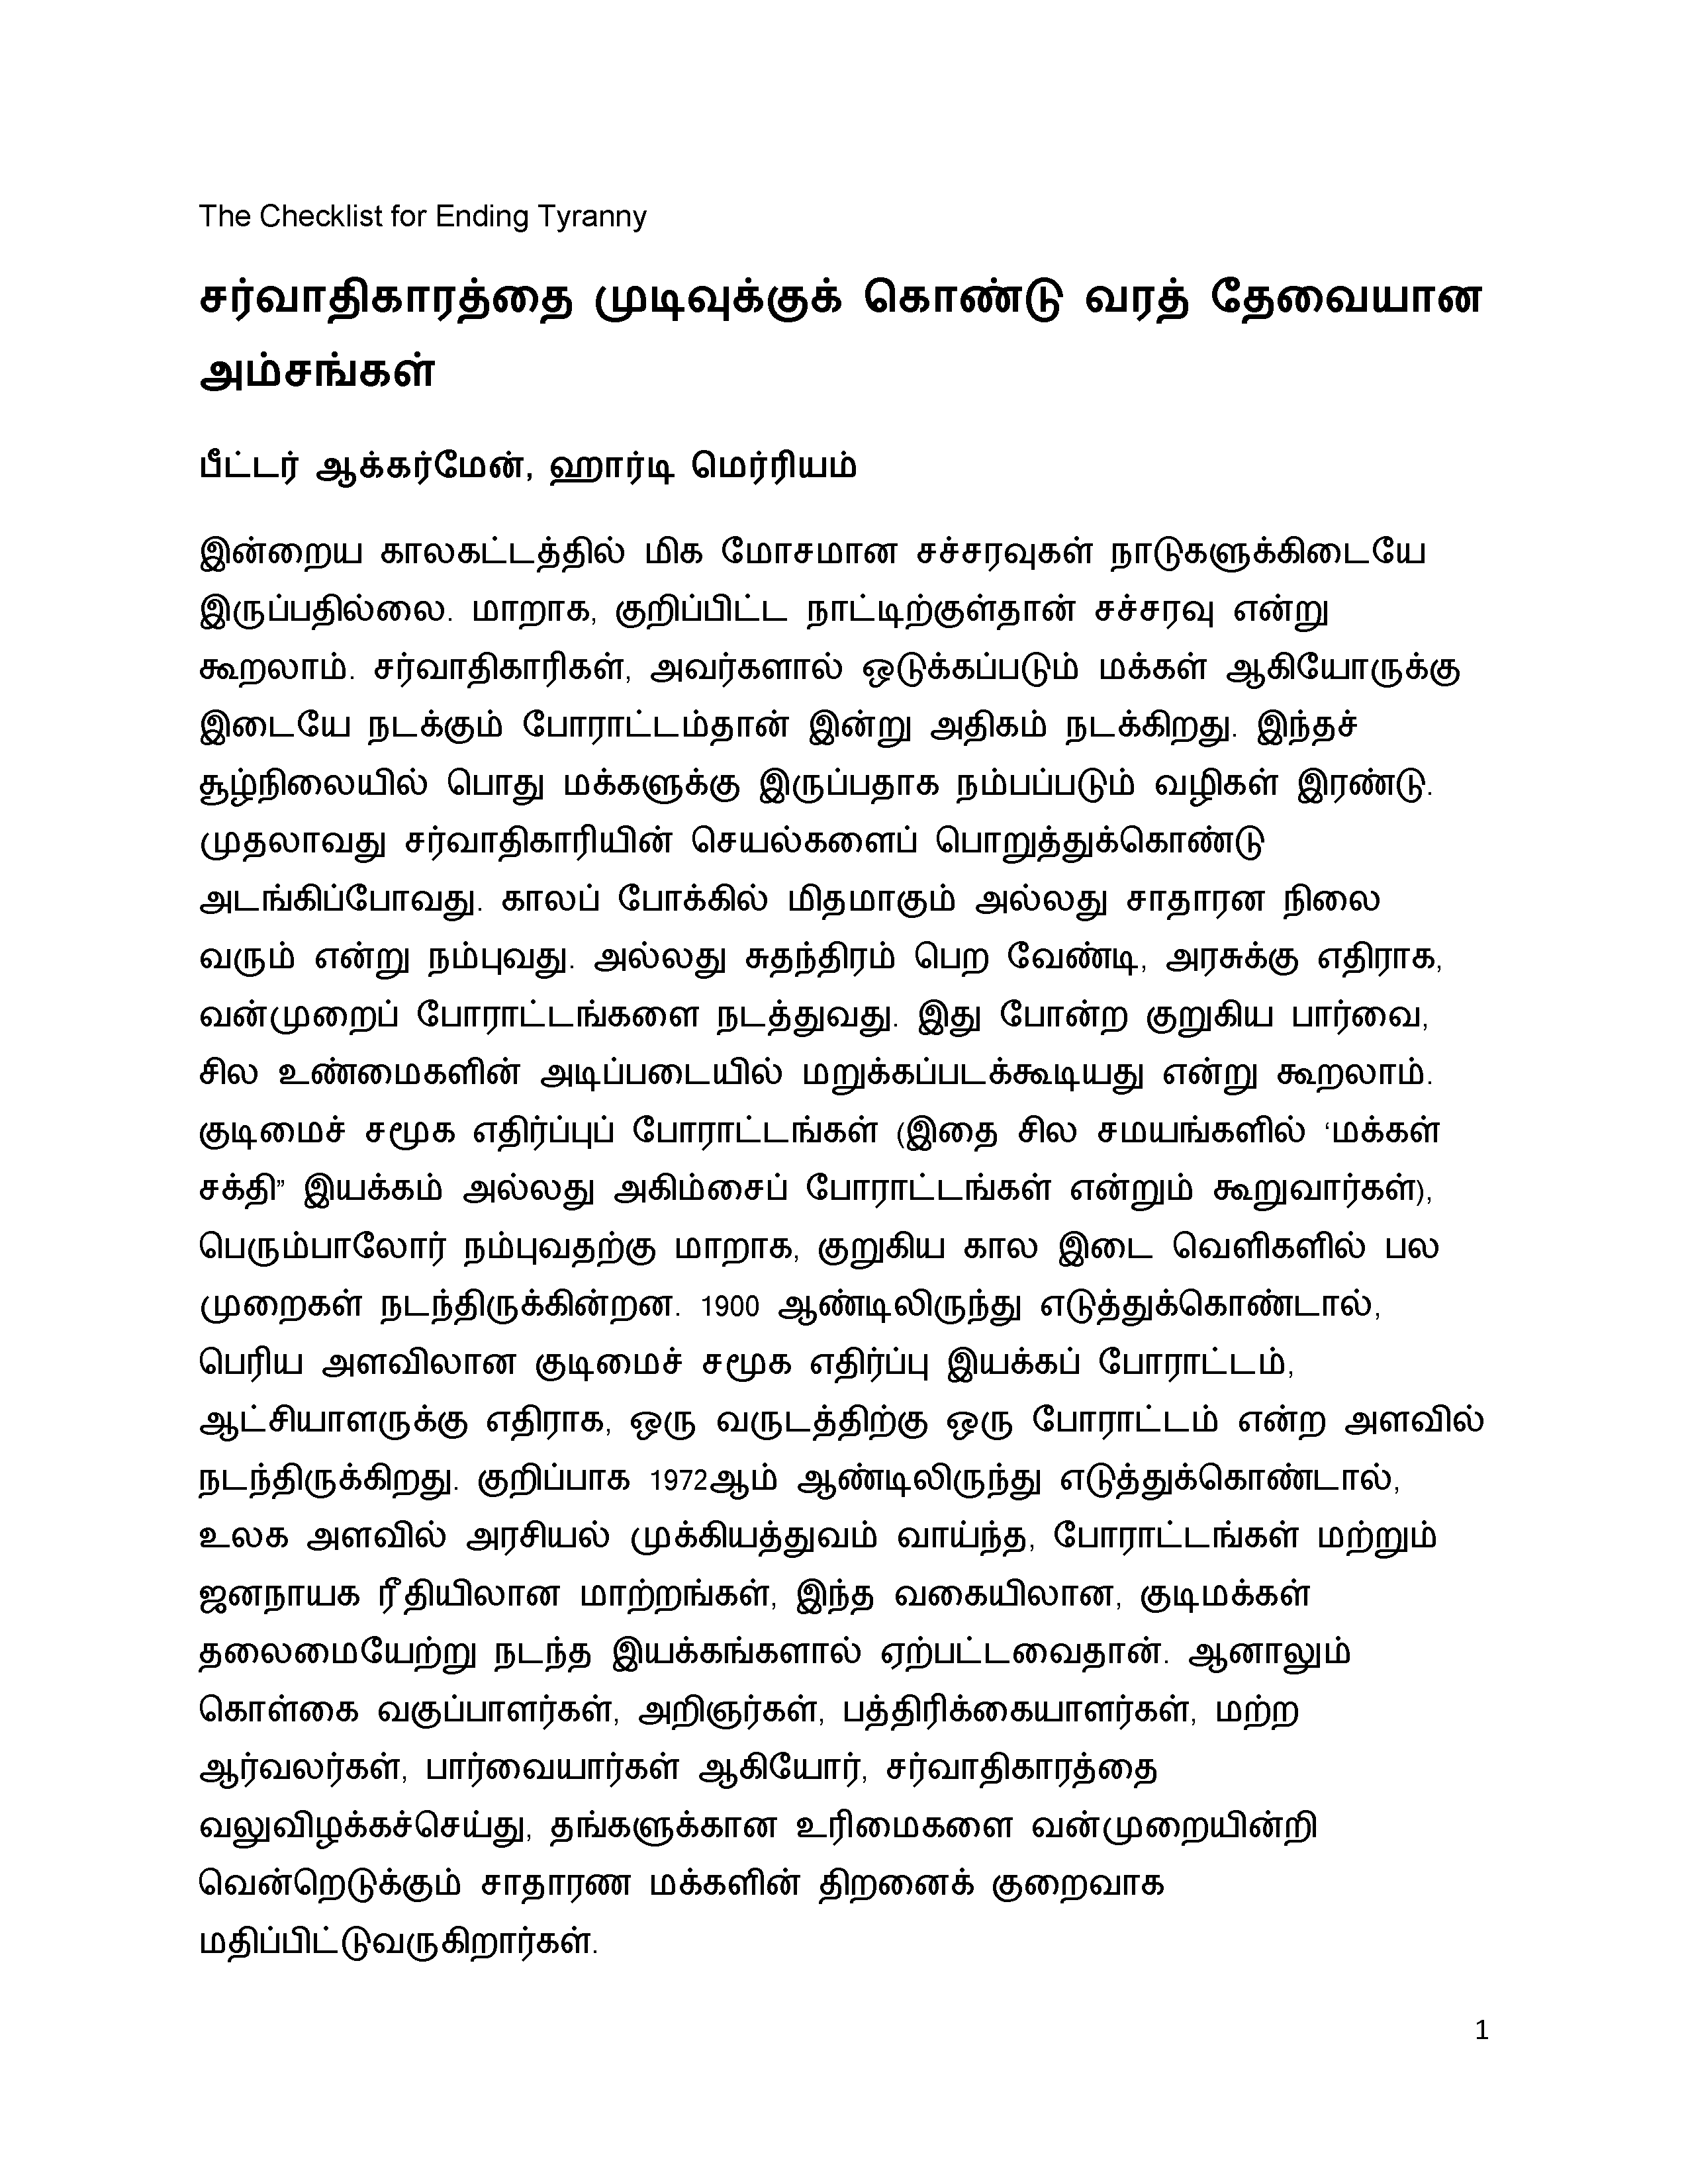 The Checklist for Ending Tyranny (Tamil)